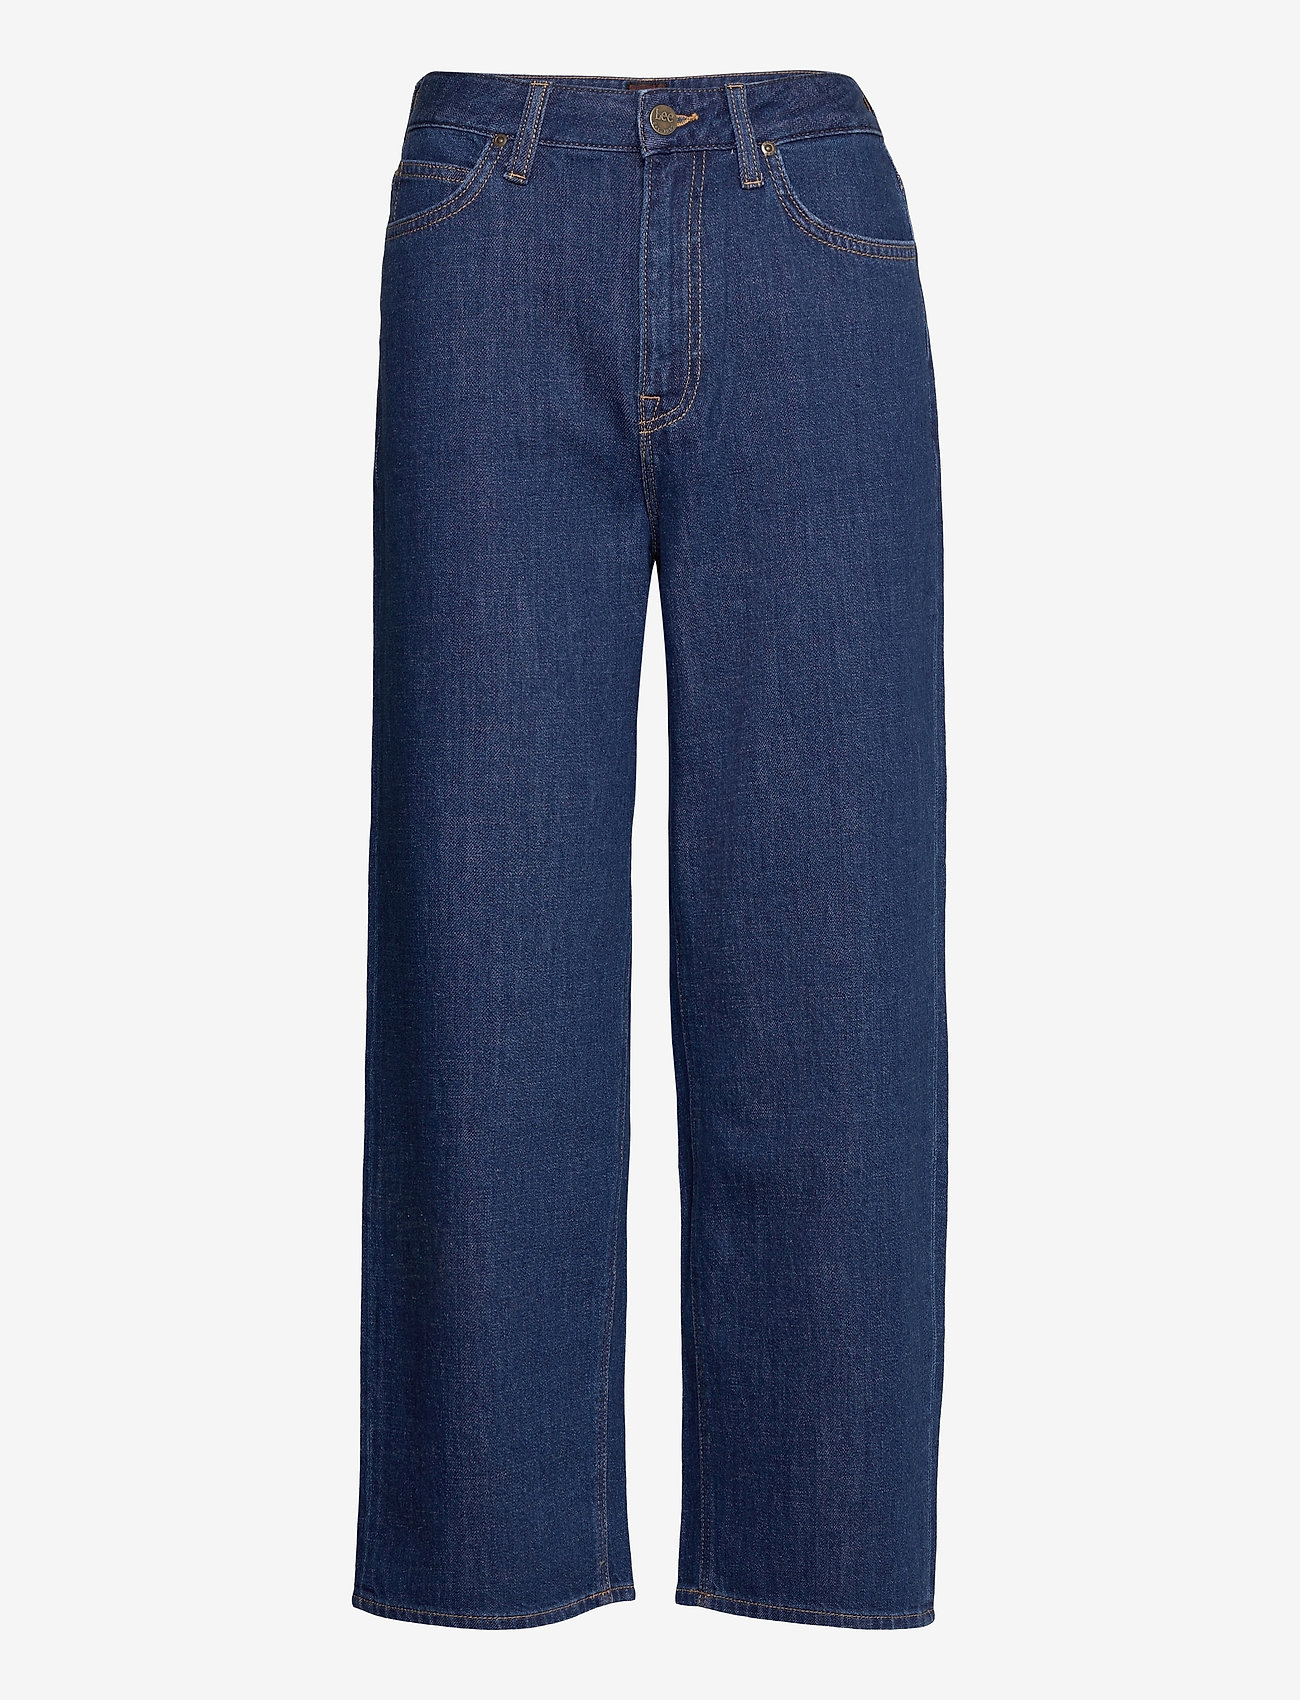 Lee Jeans - WIDE LEG - brede jeans - rinse - 0